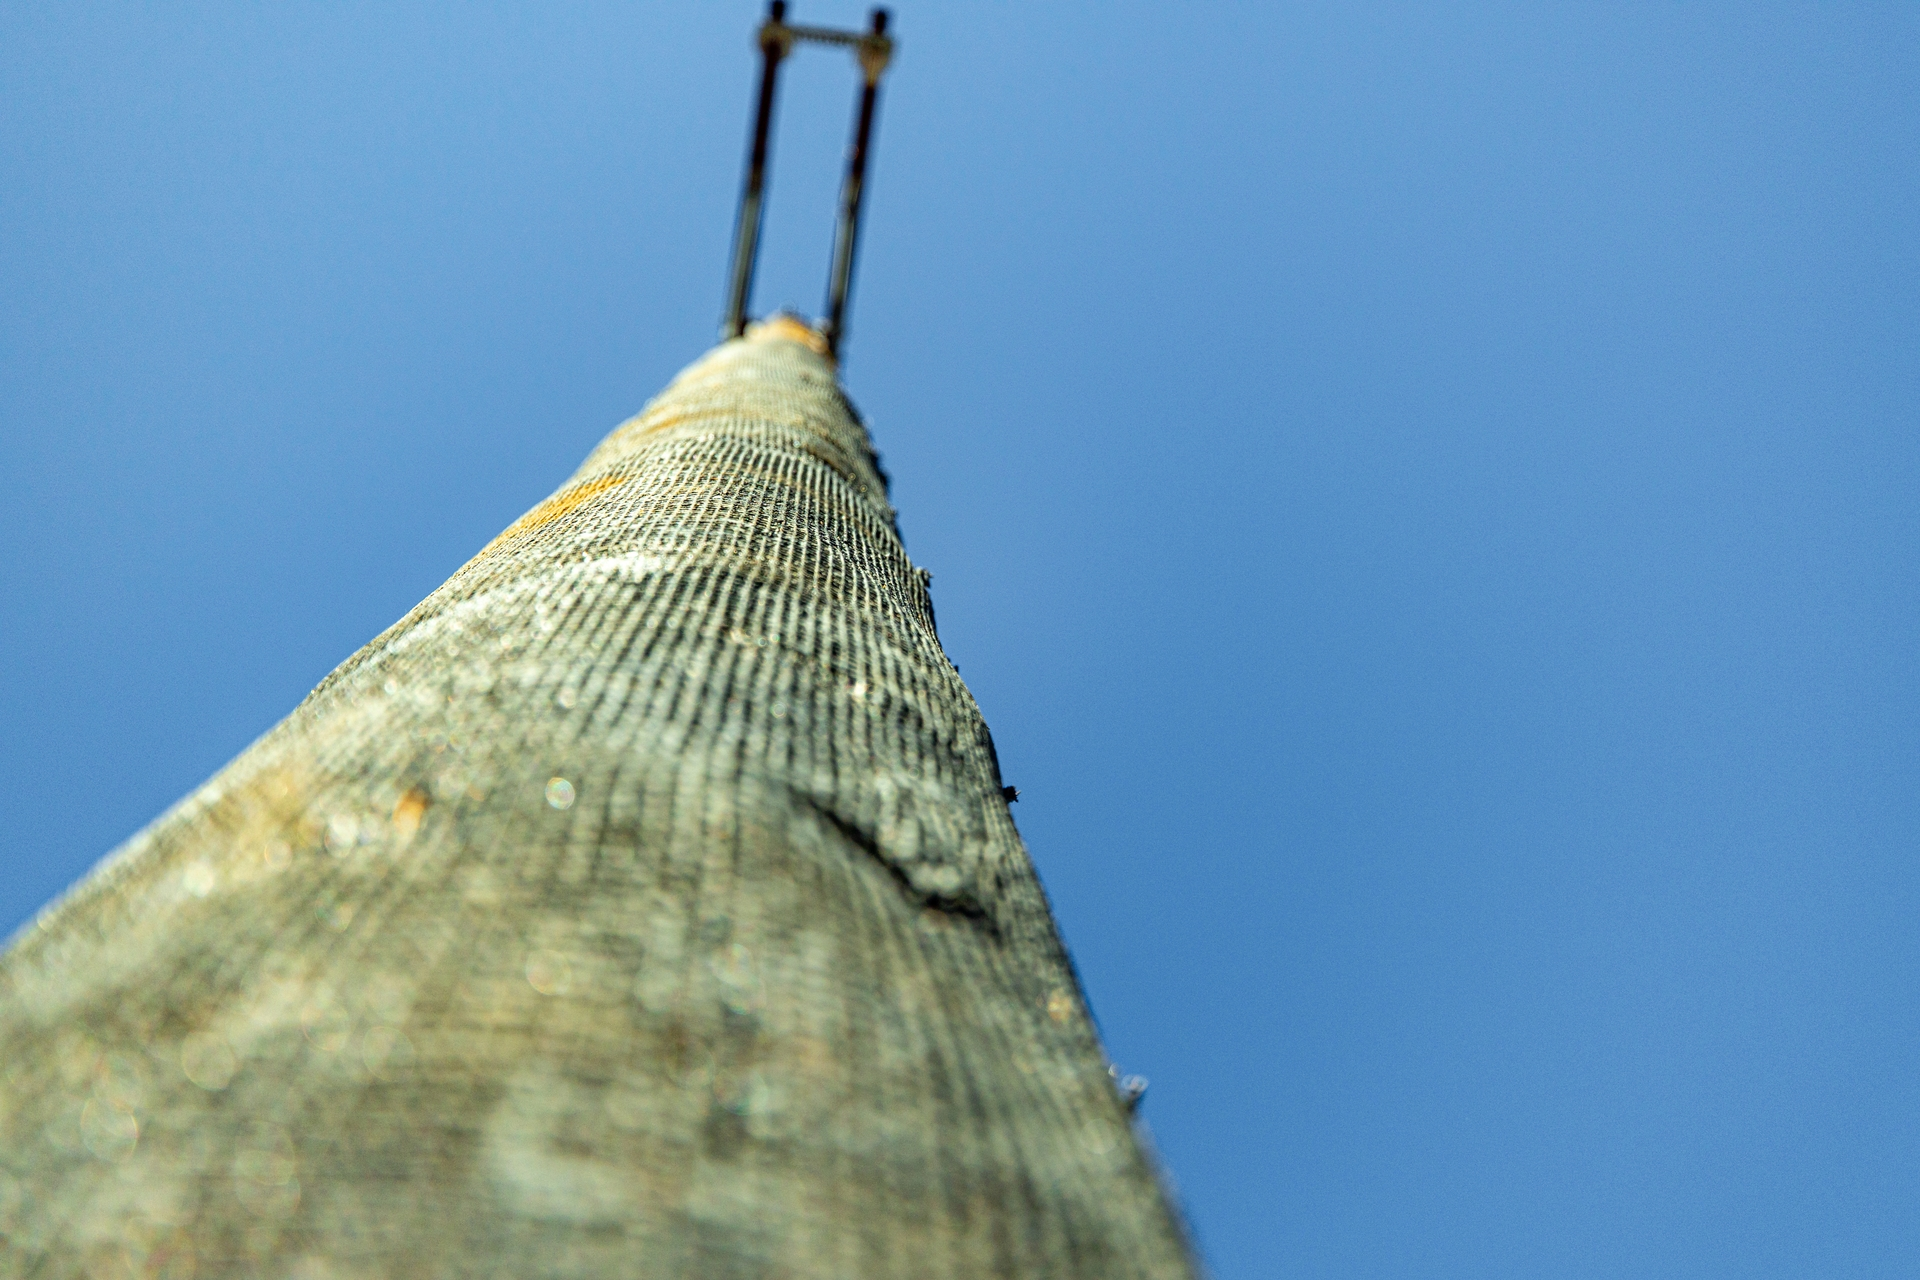 One of the wooden poles wrapped in fire-resistant mesh used in the Creek Fire restoration.